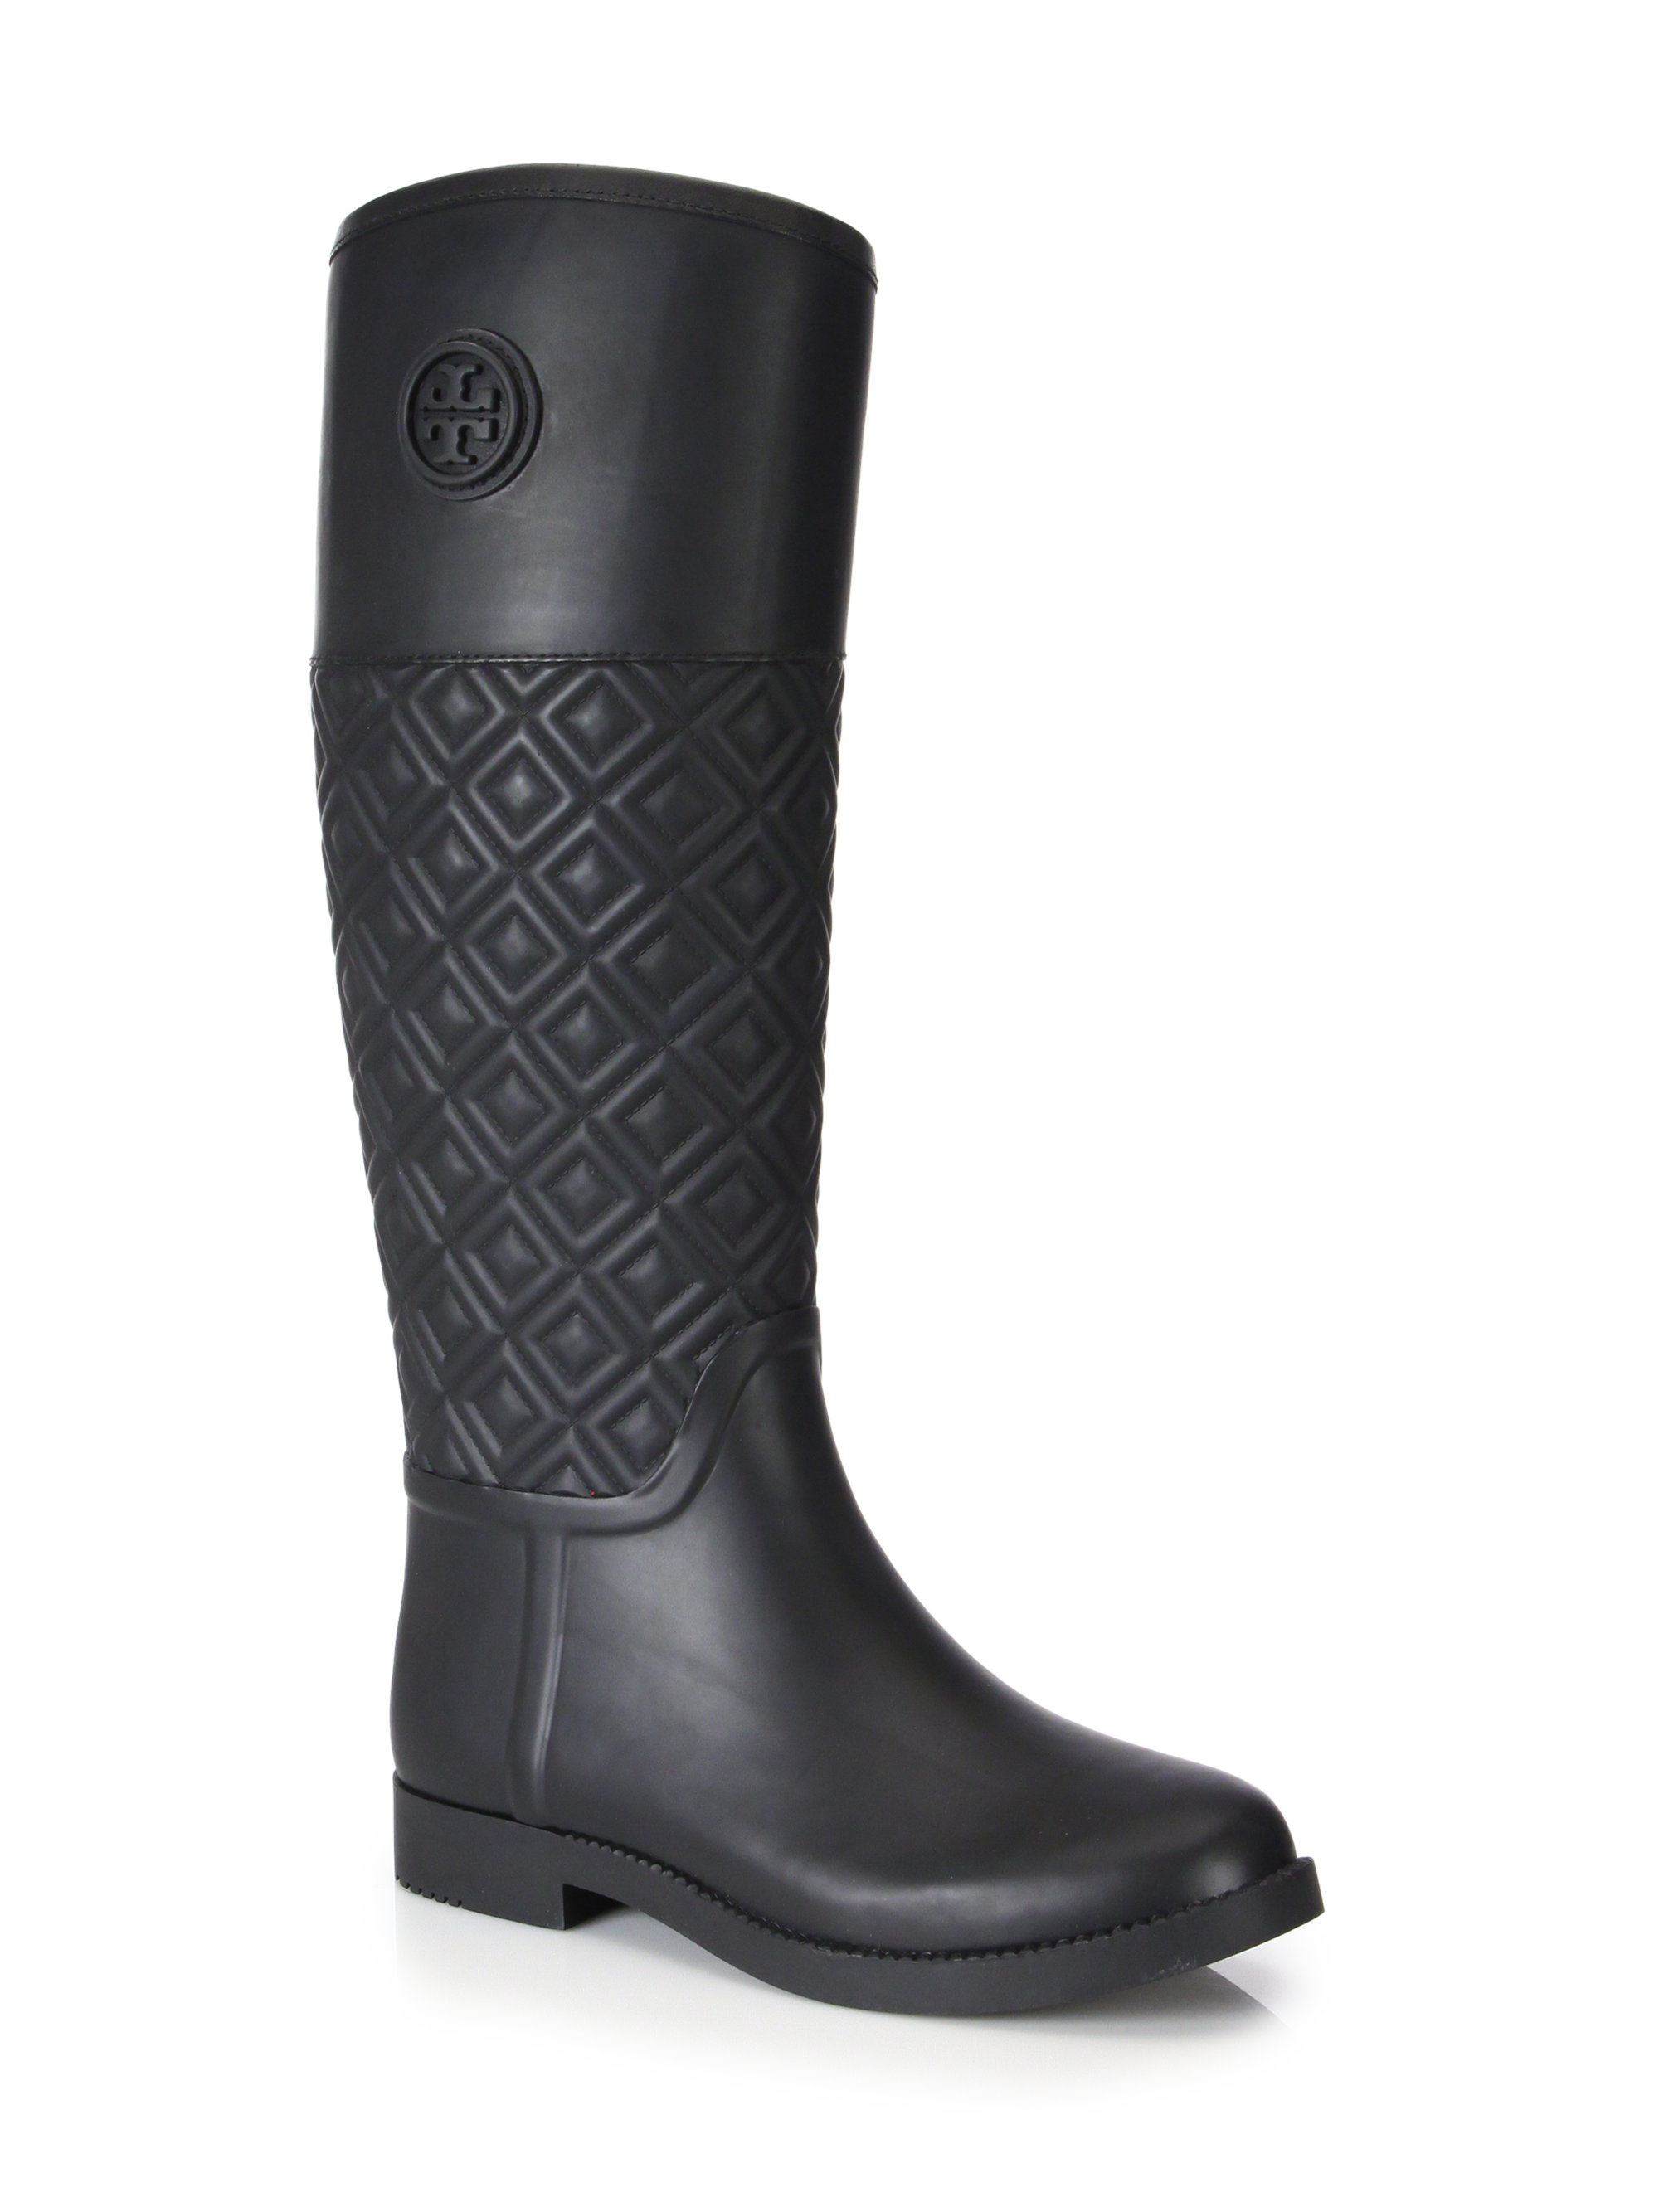 412c275305b44 ... where can i buy gallery. previously sold at saks fifth avenue womens rain  boots womens